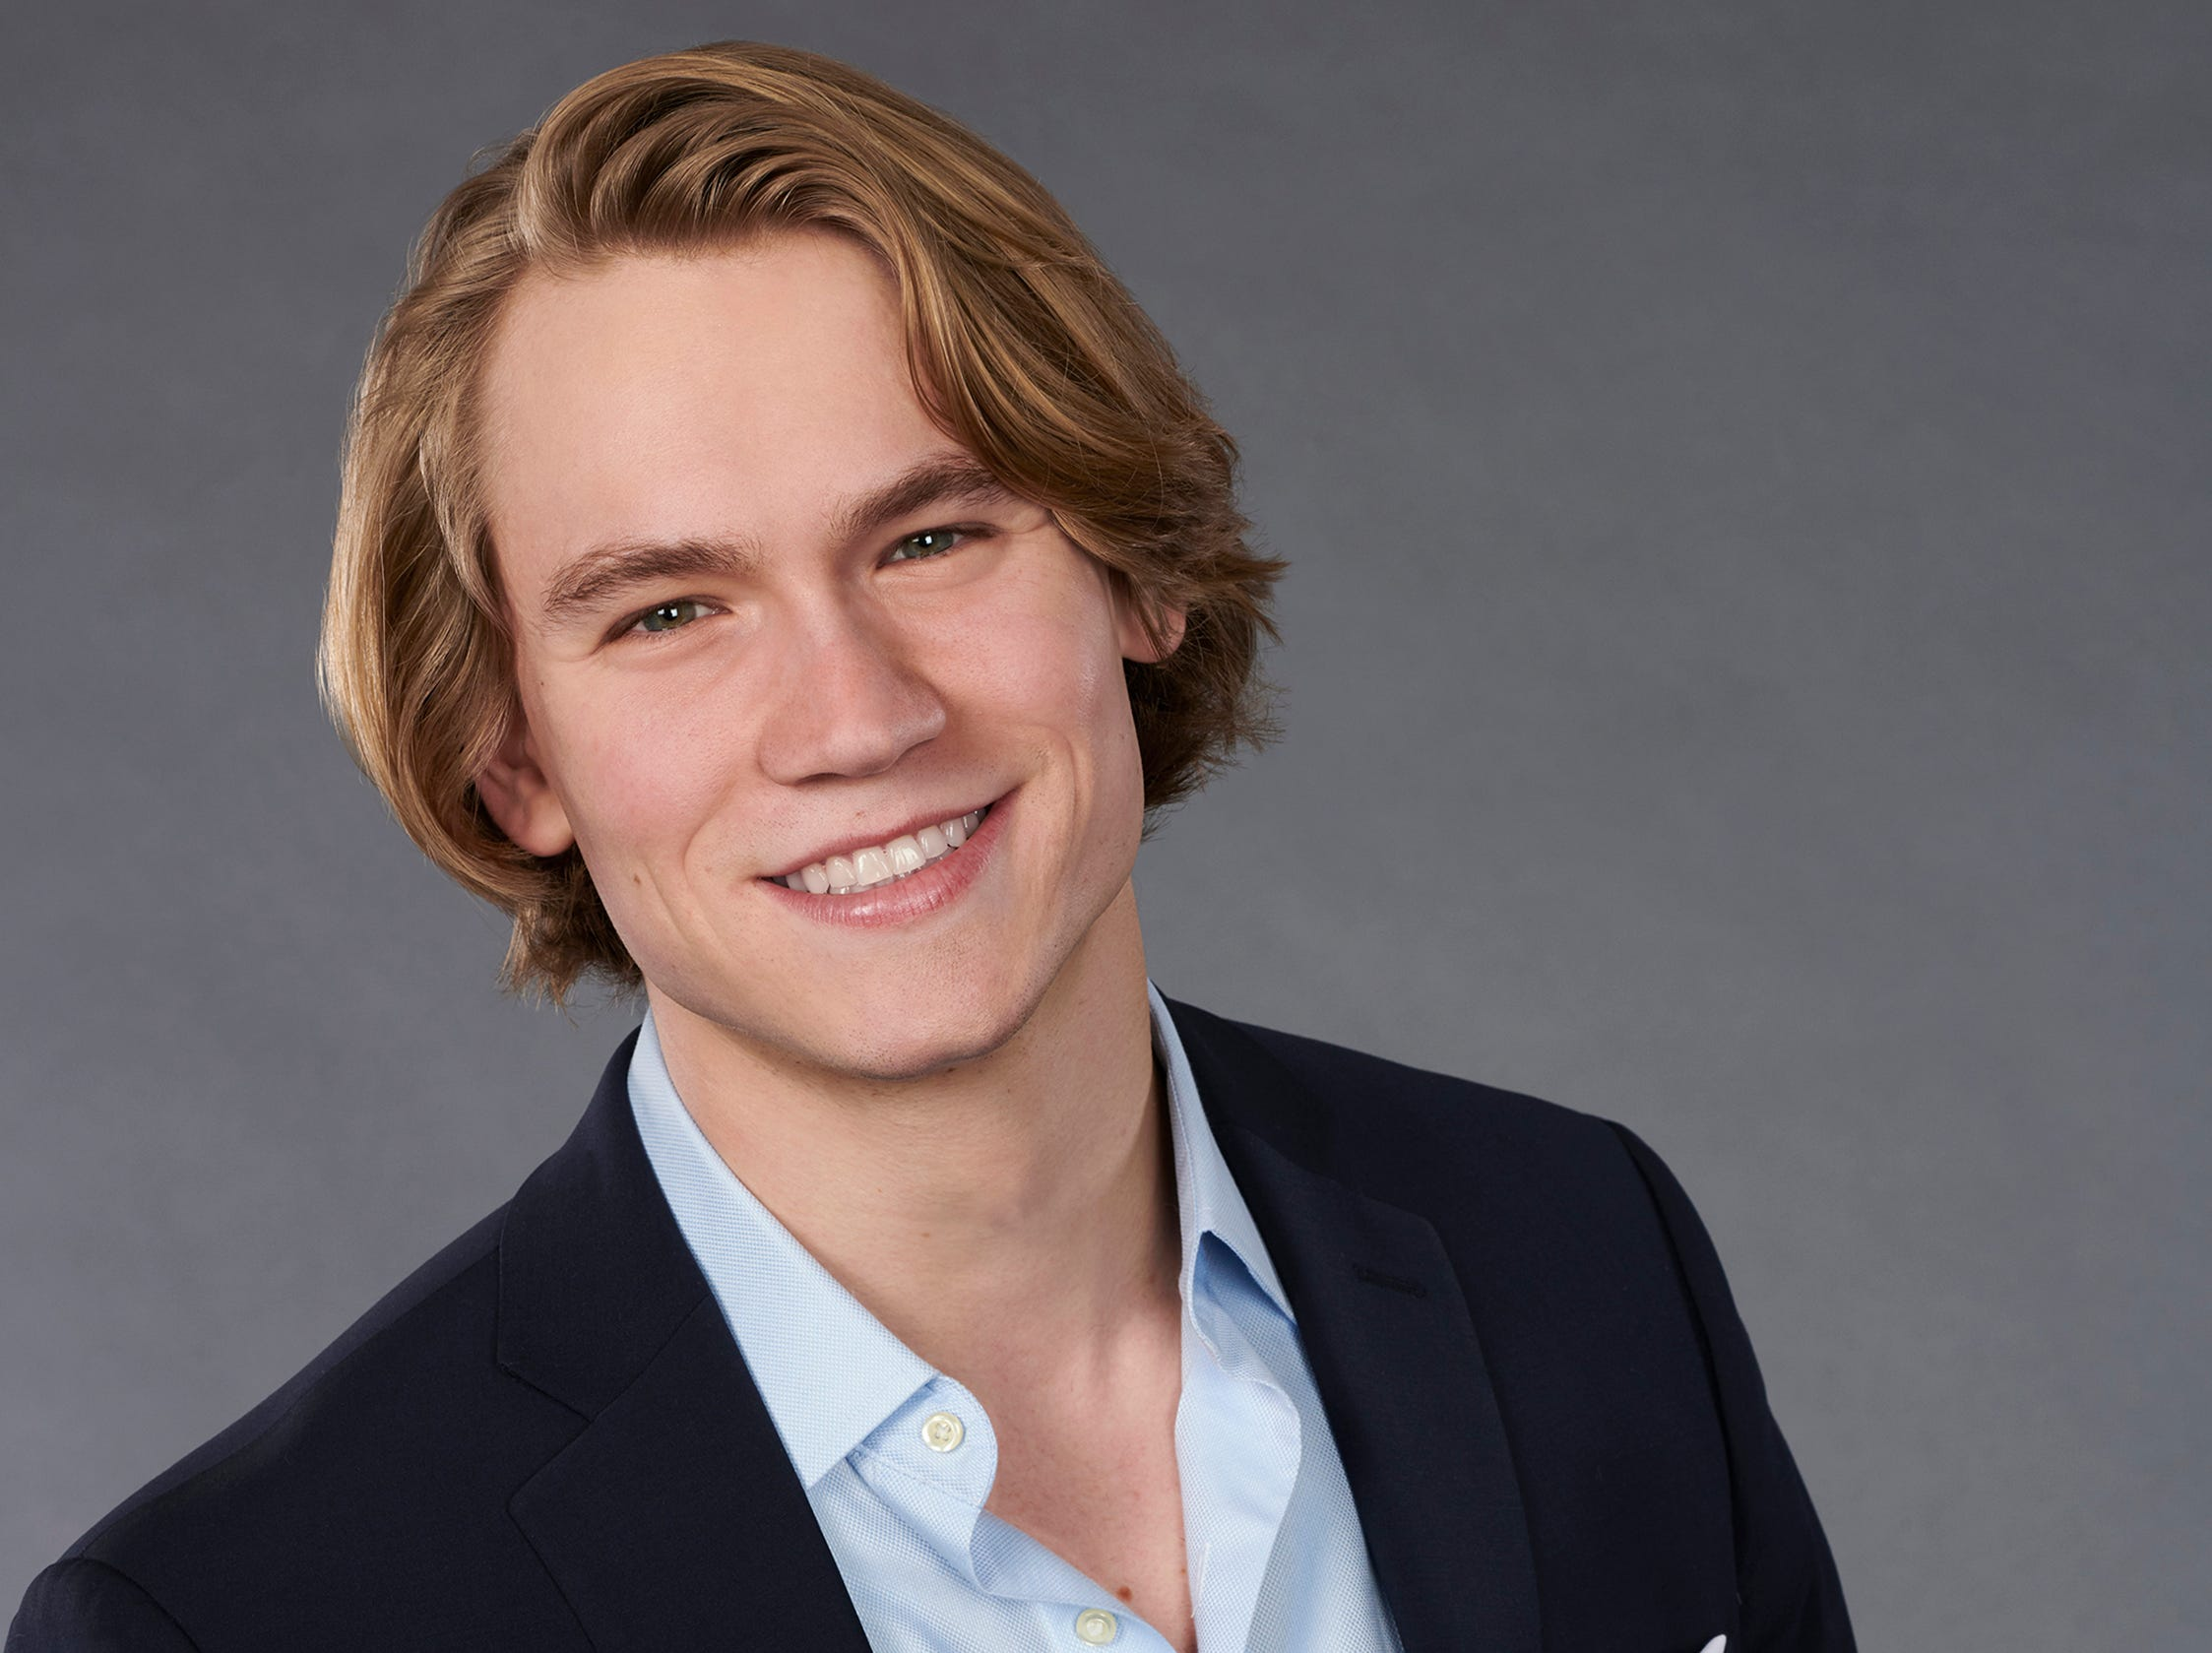 """The Bachelorette"" Season 23 contestant:  John Paul Jones, 24, Lanham, Maryland, financial analyst"